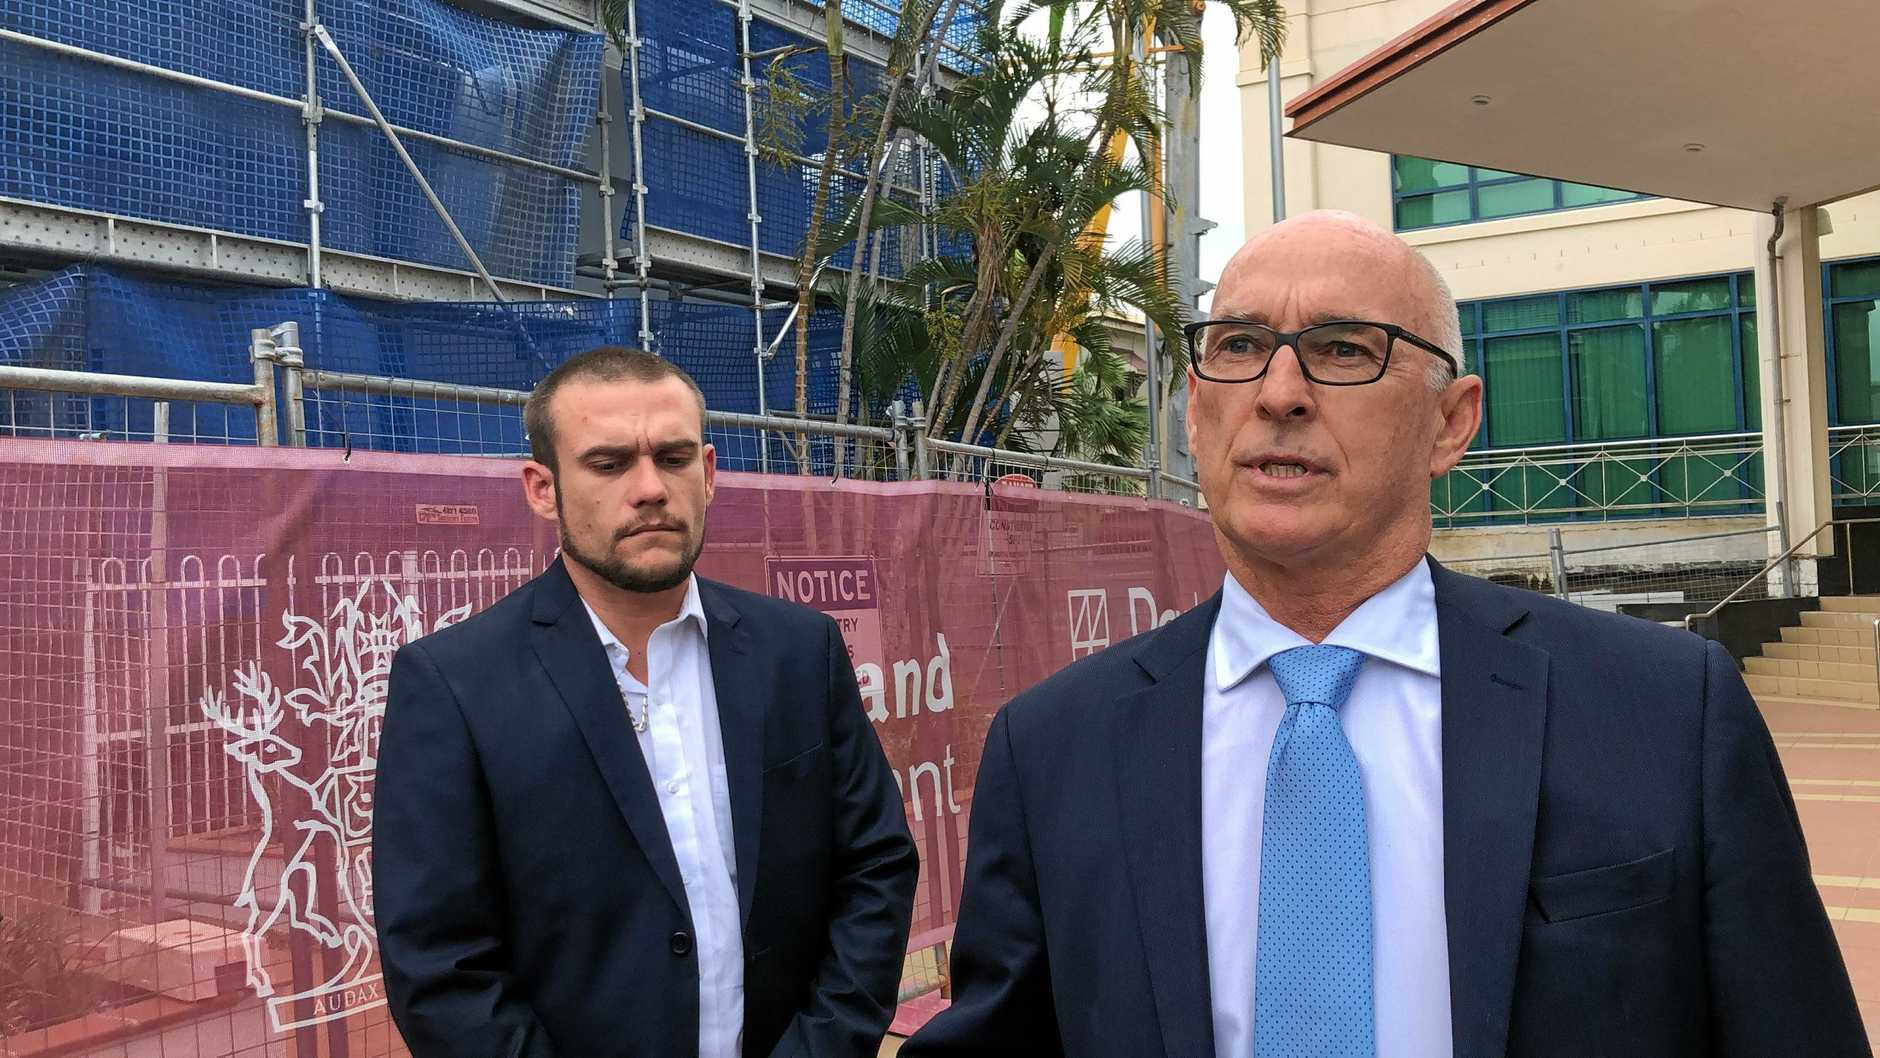 Barrister Paul Smart with Calliope man Jamie John Blake address the media after Blake was sentenced for giving his son cannabis oil to treat his severe autism.